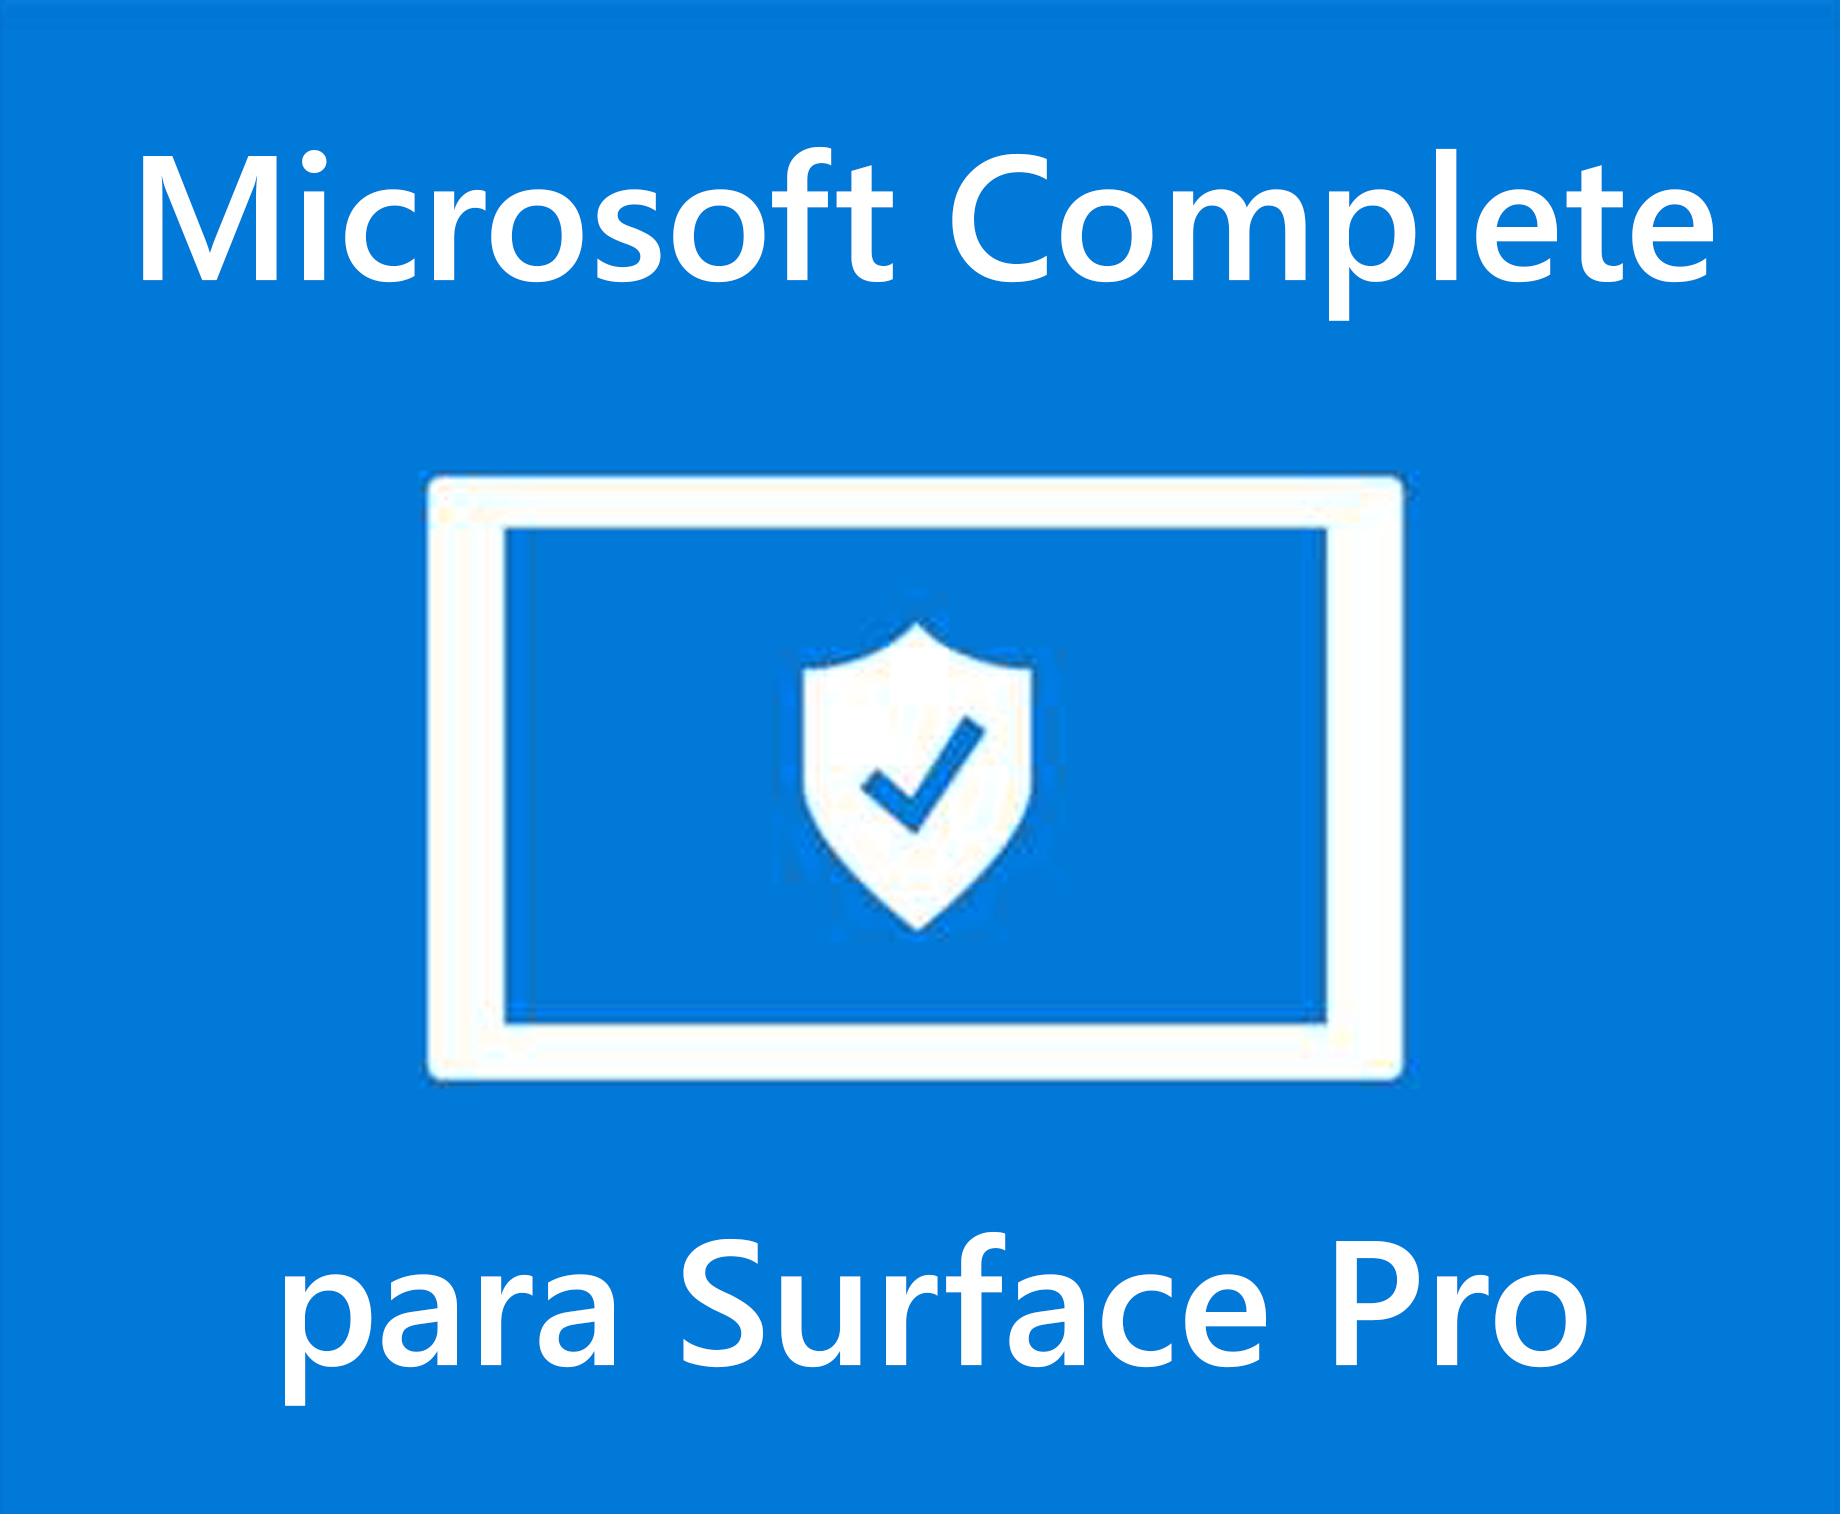 Microsoft Complete para Surface Pro